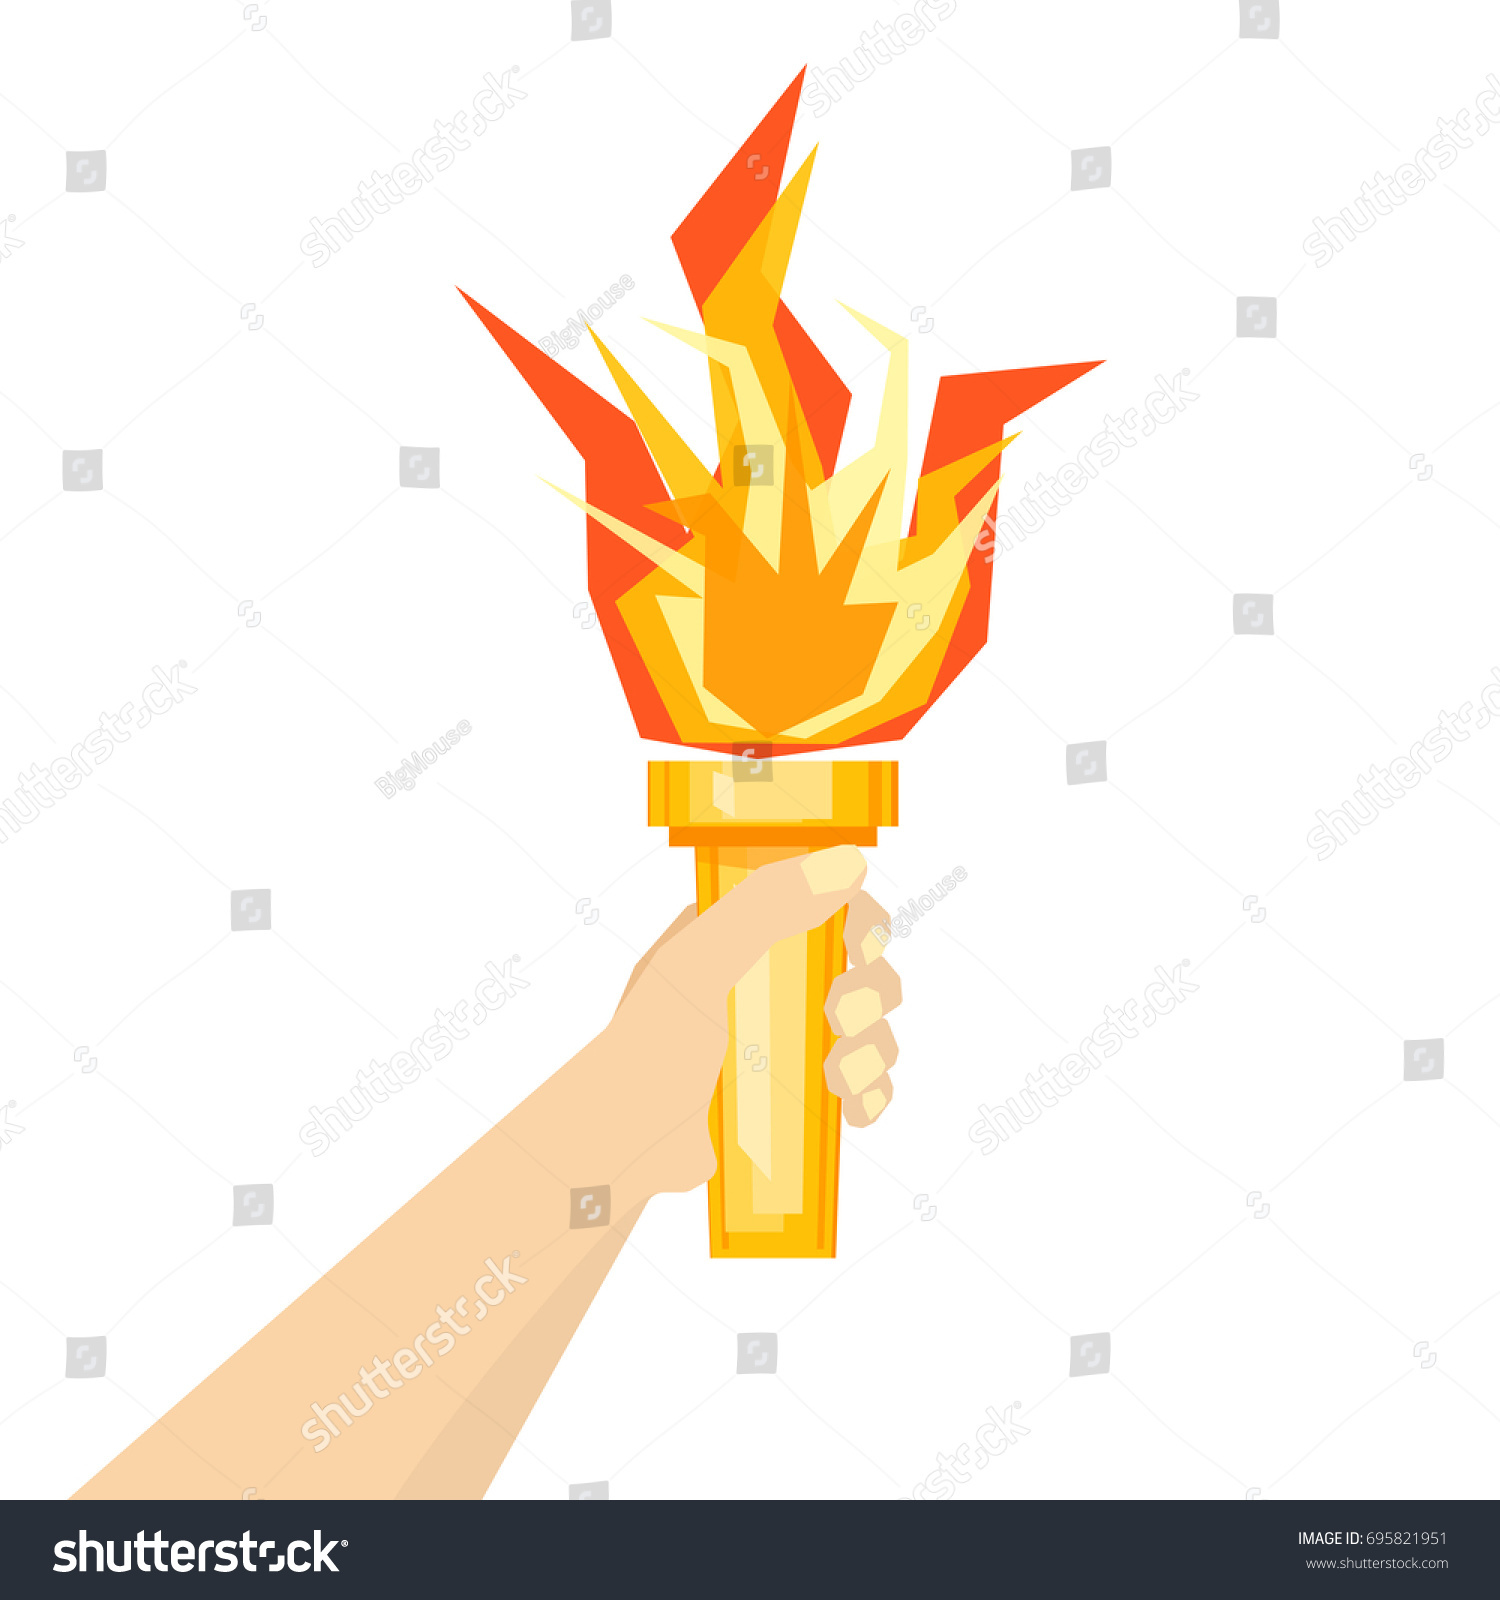 Human Hand Fire Torch On Ligh Stock Illustration 695821951 ... for fire torch in hand  54lyp